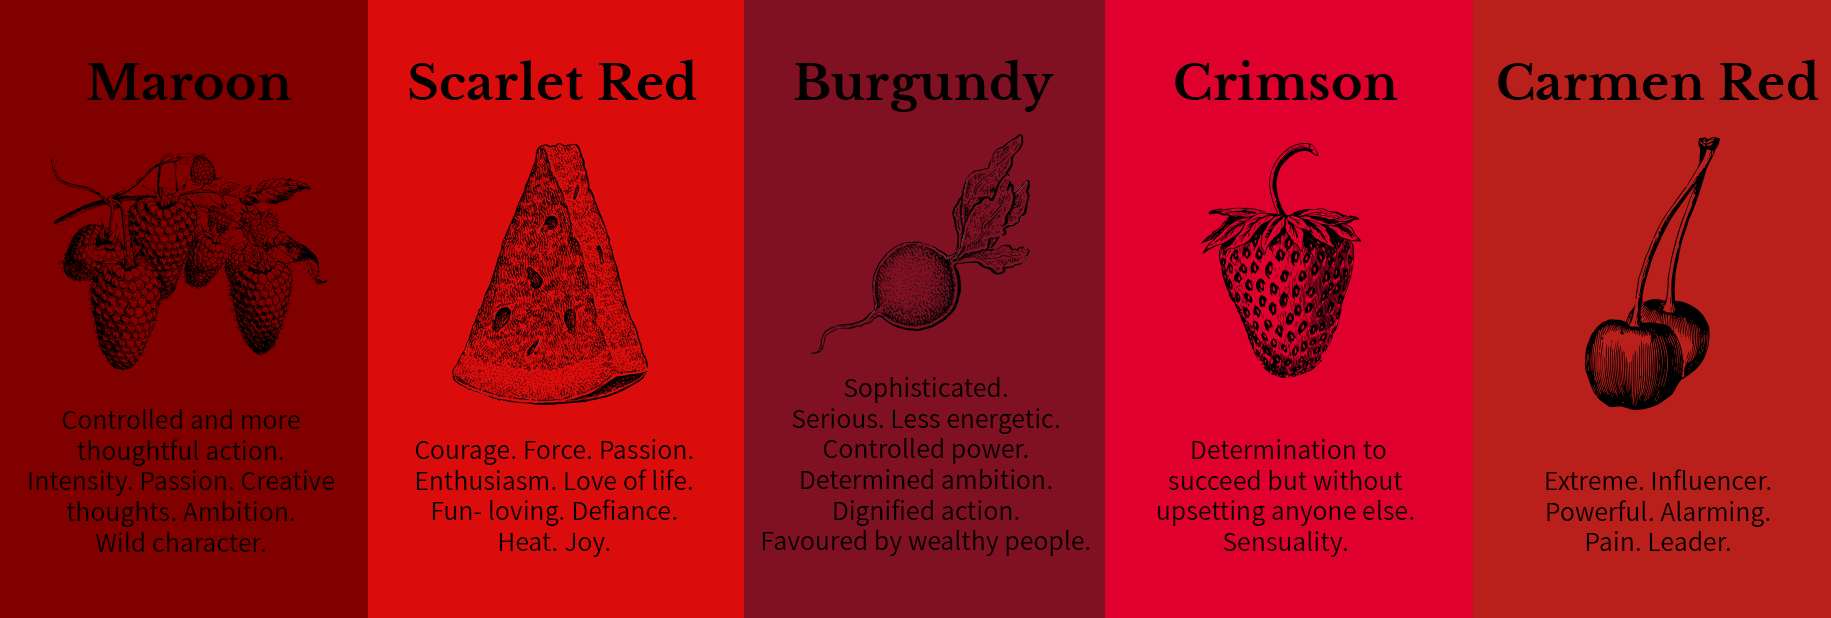 Red_Infographic1-5.png